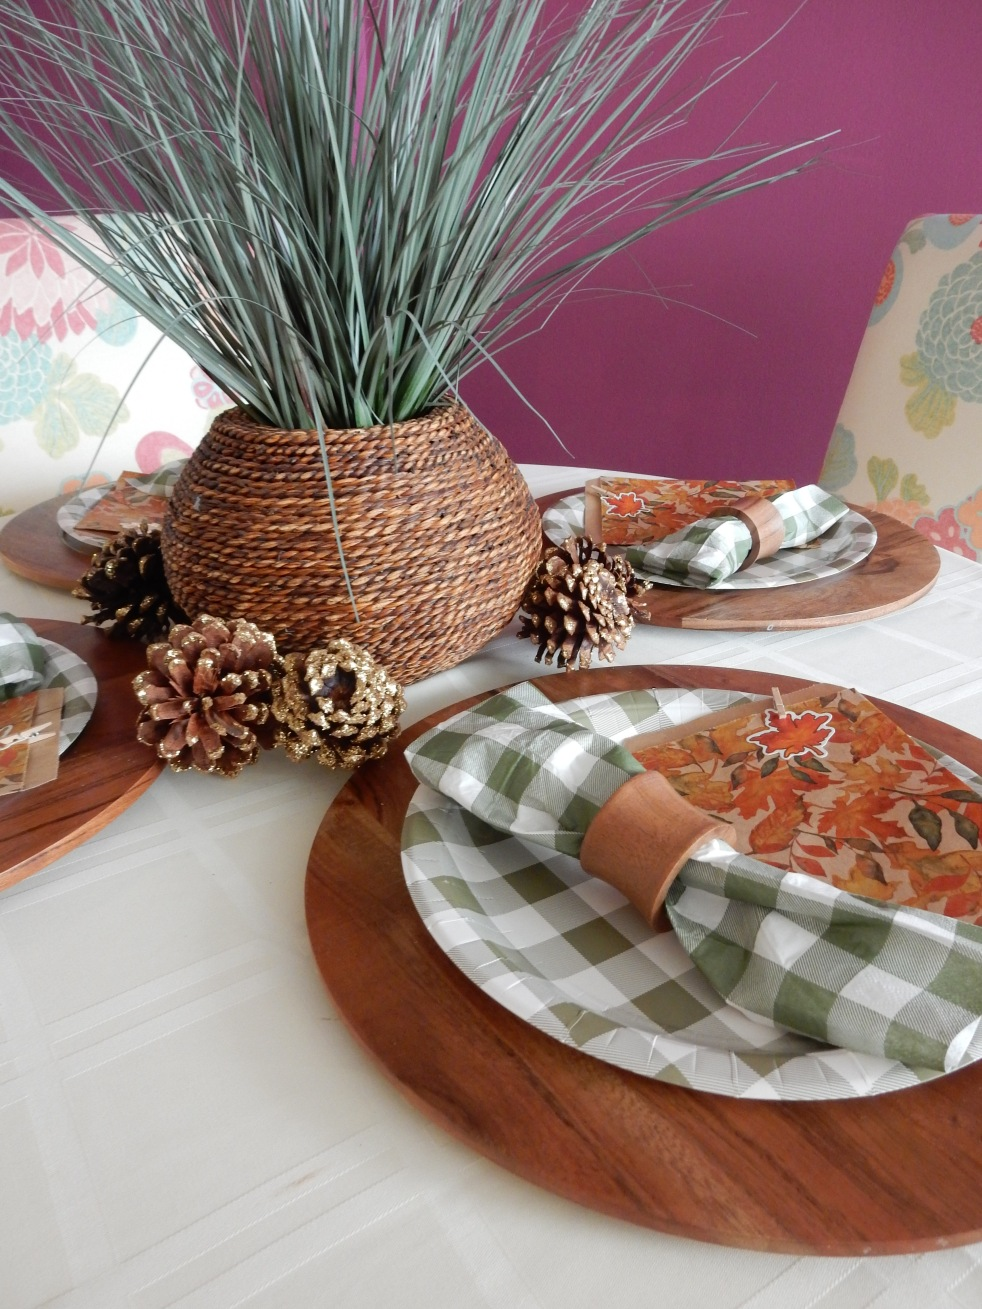 Dining Decor, Tablescape, Tablescapes, Sarah In Style, Sarah Meyer, Cute table decor, decorating on the cheap, Blogger design ideas, blogger party ideas, dressing up your table, fall table decor, fall tablescapes, easy centerpieces, simple table decorating, cute napkin rings, table decor ideas, how to set a perfect table, Thanksgiving Table Decor, Thanksgiving Tablescapes, Cheap Thanksgiving meal ideas, Cheap Table Decor, Green and White Tablescape, Dinner Party Goodie Bags, Thanksgiving Decorations, setting a Thanksgiving table